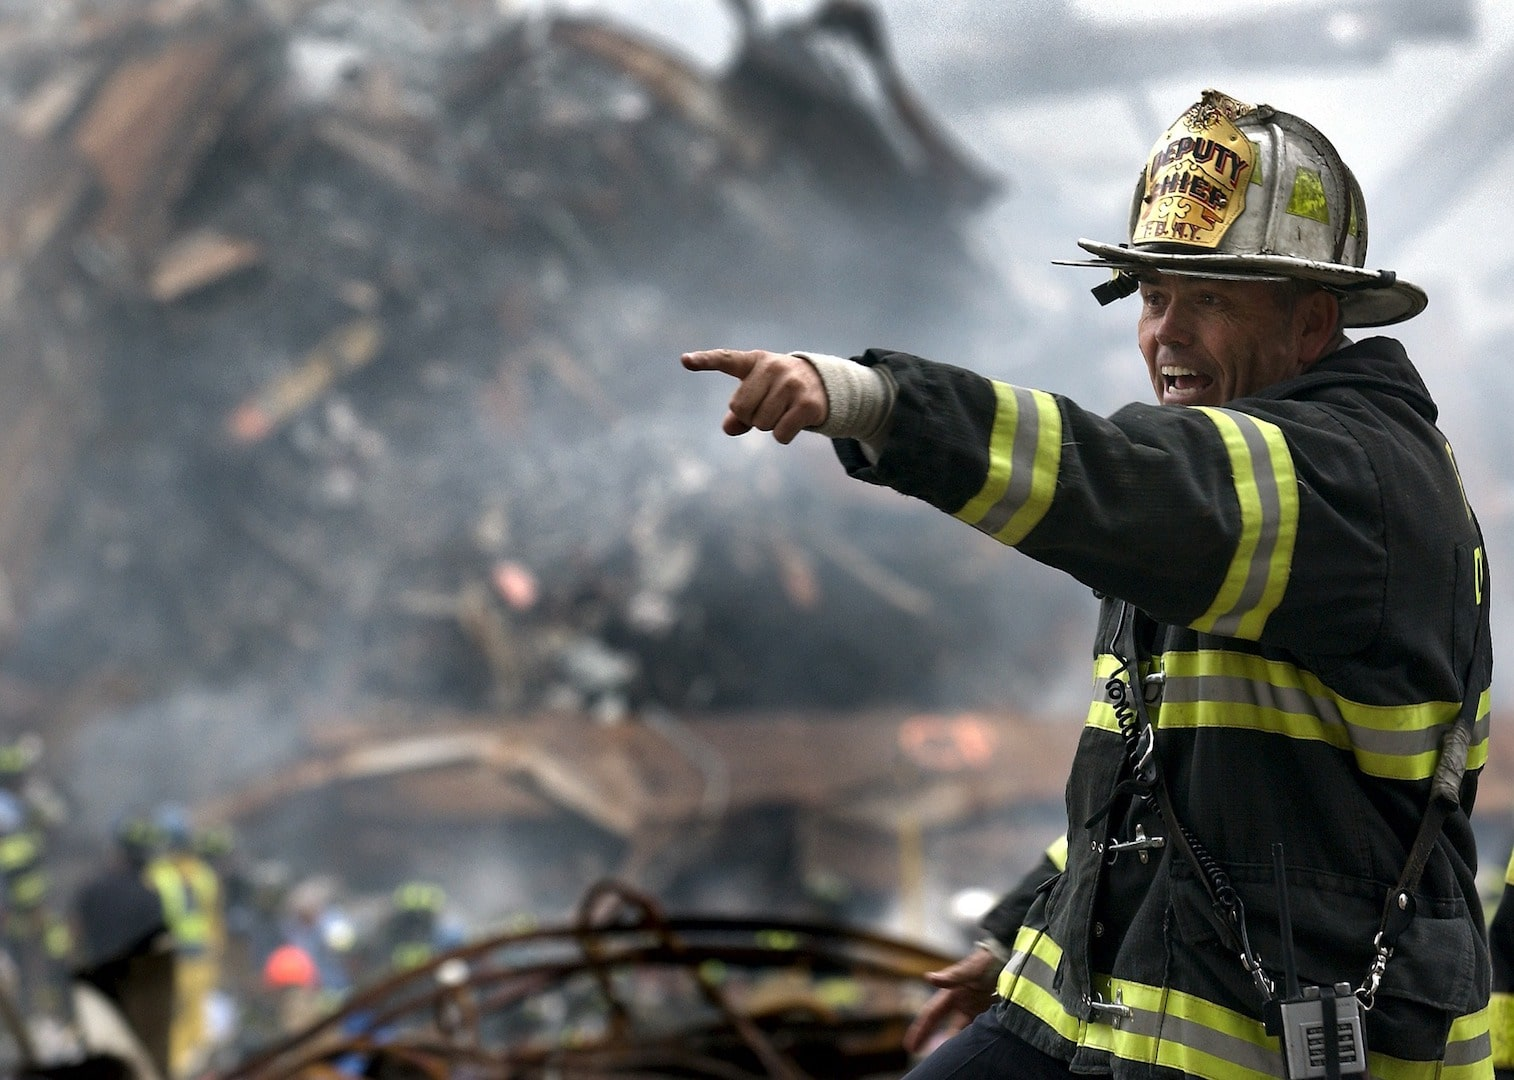 Emergency Management Vs Prepping: Is there a difference?